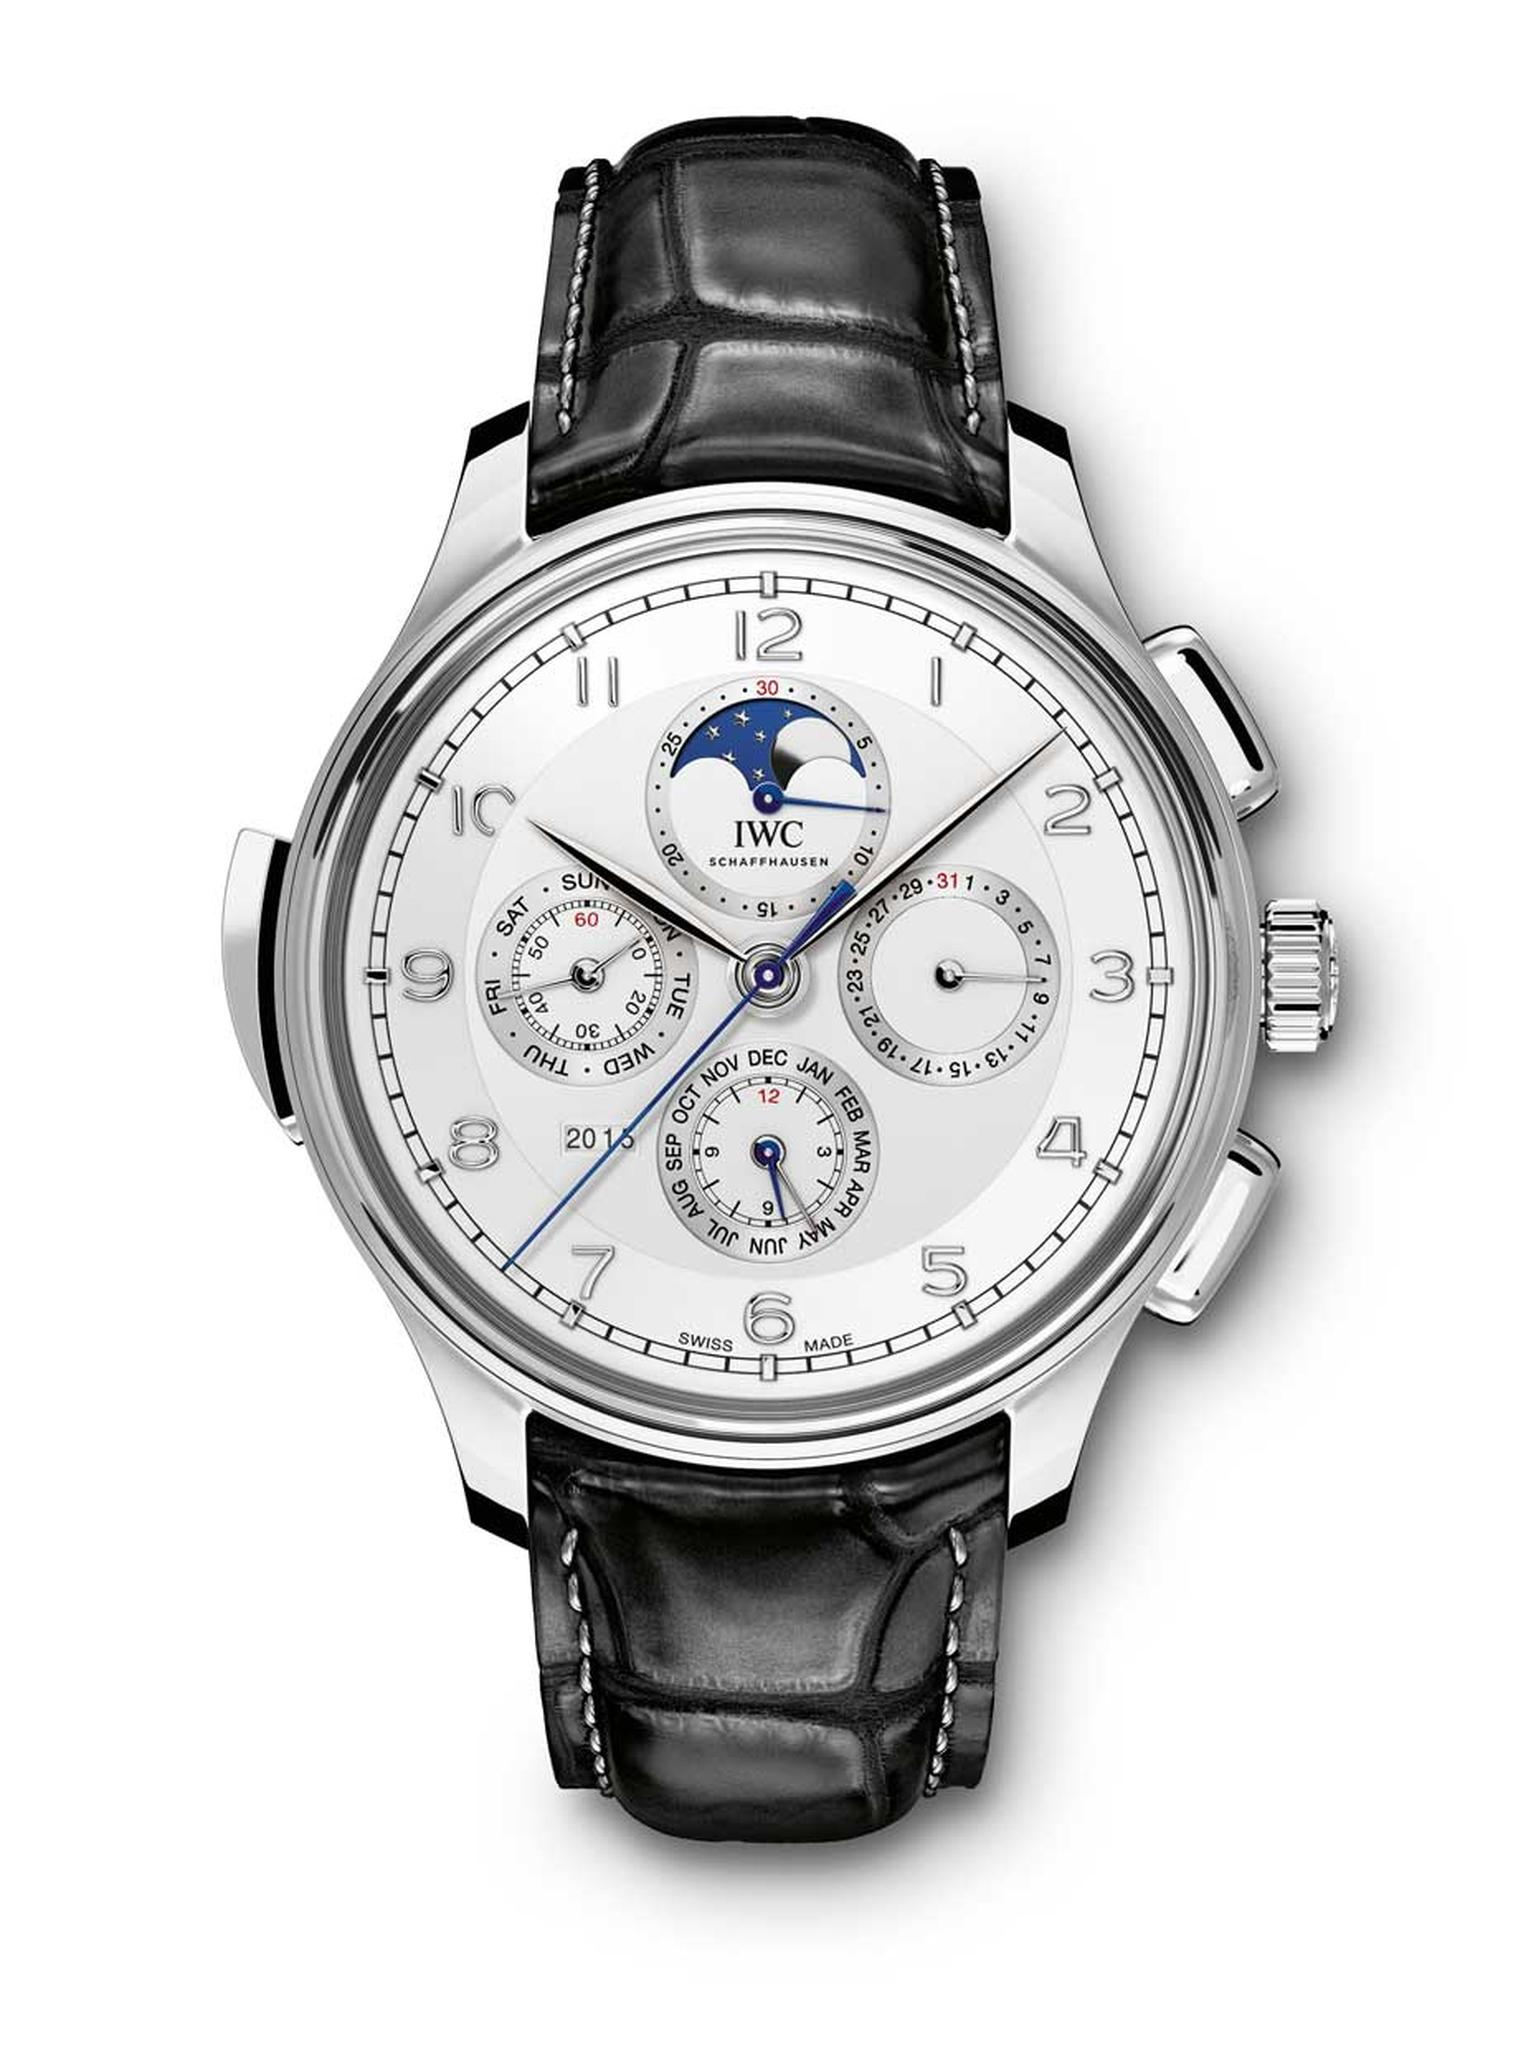 IWC Portugieser Grande Complication houses an incredibly complex minute-repeating strike train, which chimes out the time in clear acoustic tones: with lower chimes for the hours, a double strike – one on each gong – for the quarter-hours and a strike on